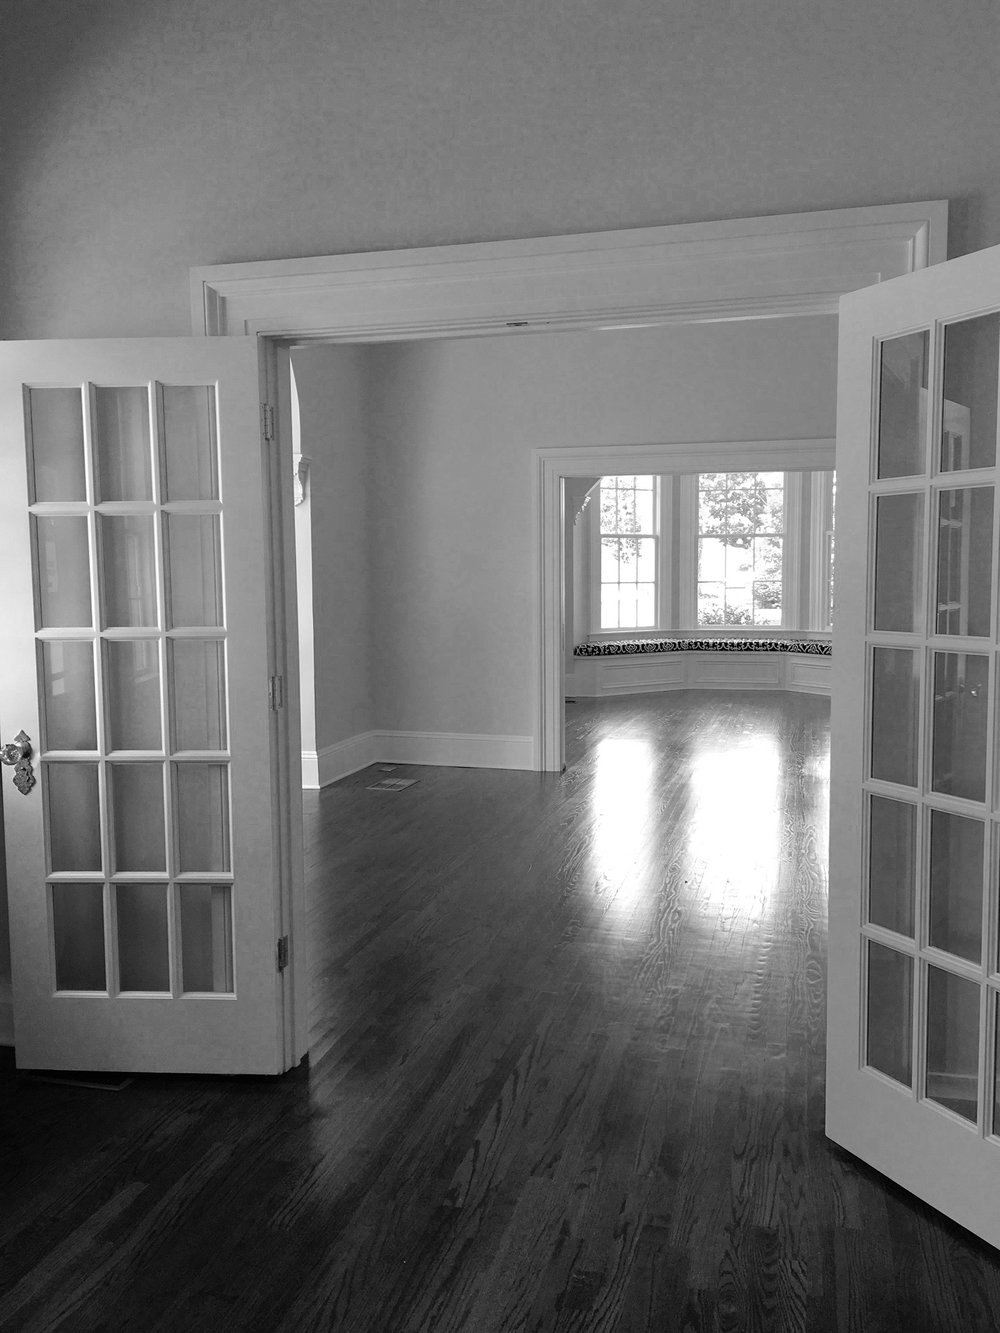 Interior North Side B&W.jpg